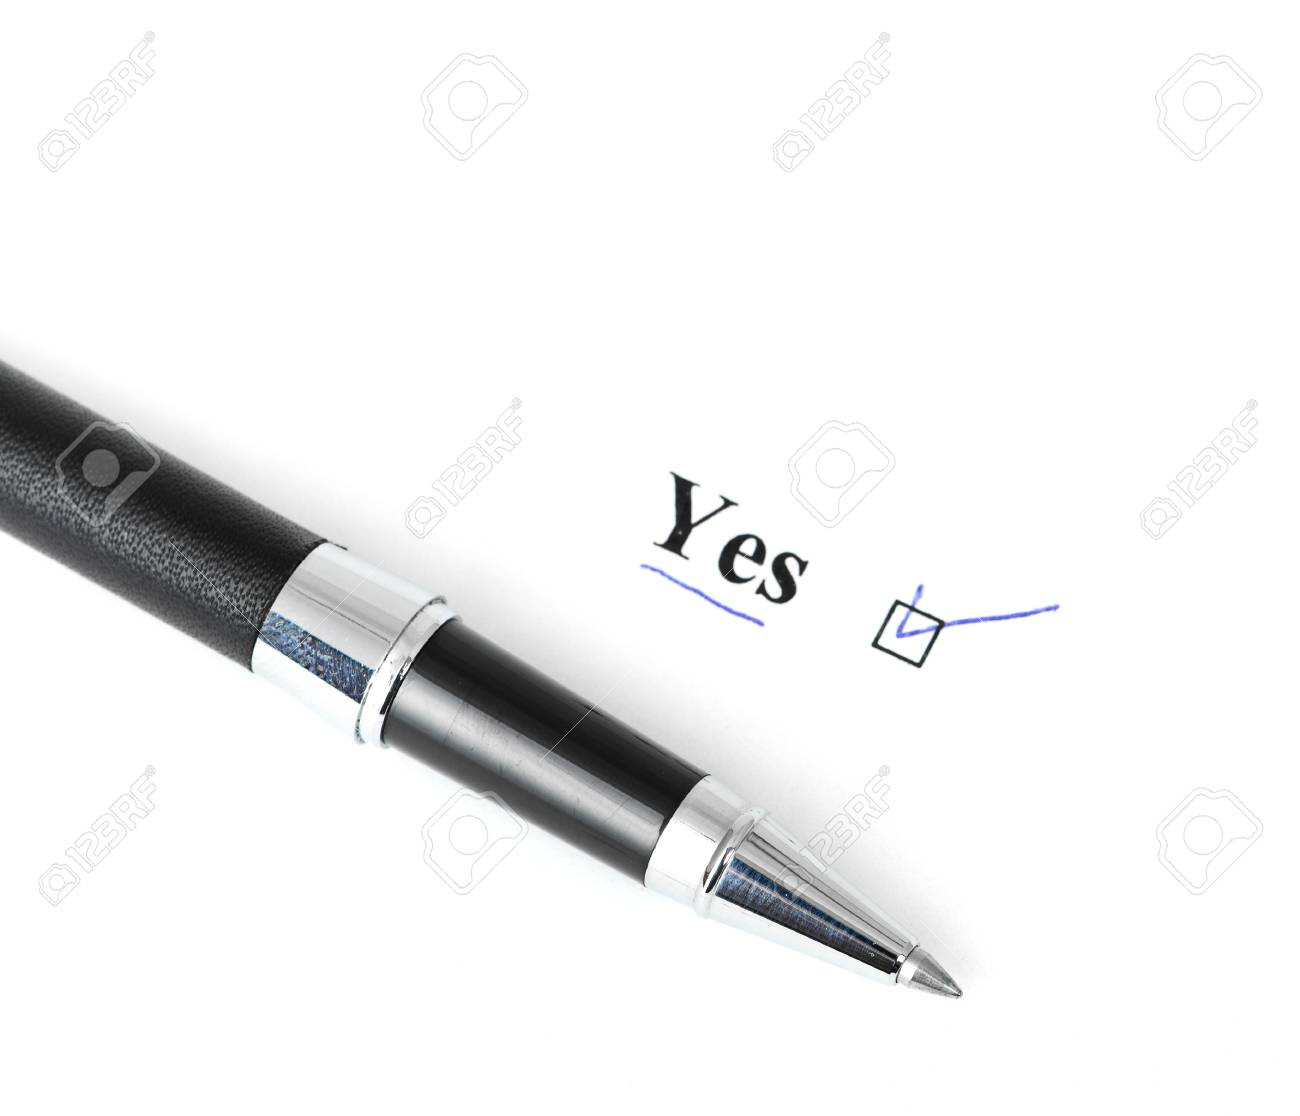 yes word isolated on a white background Stock Photo - 15147922